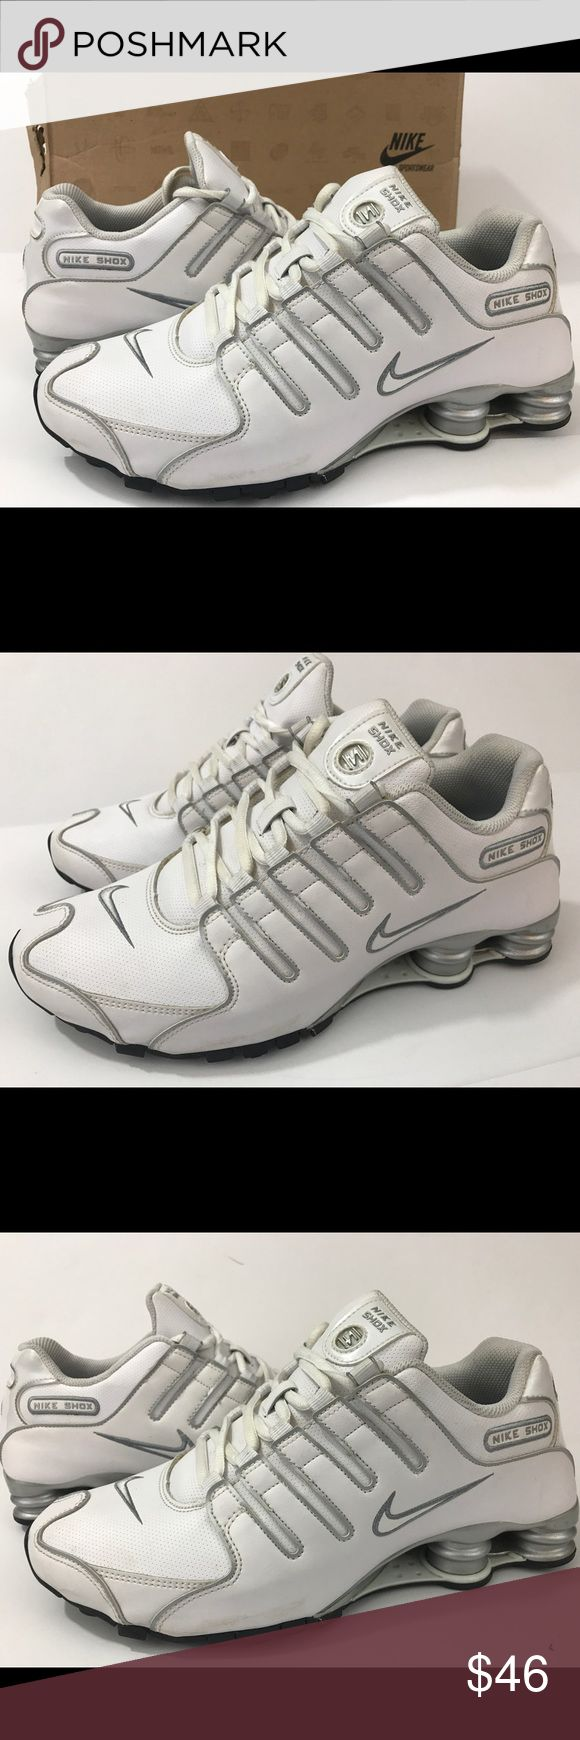 Nike Shox NZ running walking shoe size 8 men's Nike shox NZ White/silver Size 8  Great Cool condition with BOX Shipped double boxed for protection!  See all photos please. Nike Shoes Athletic Shoes